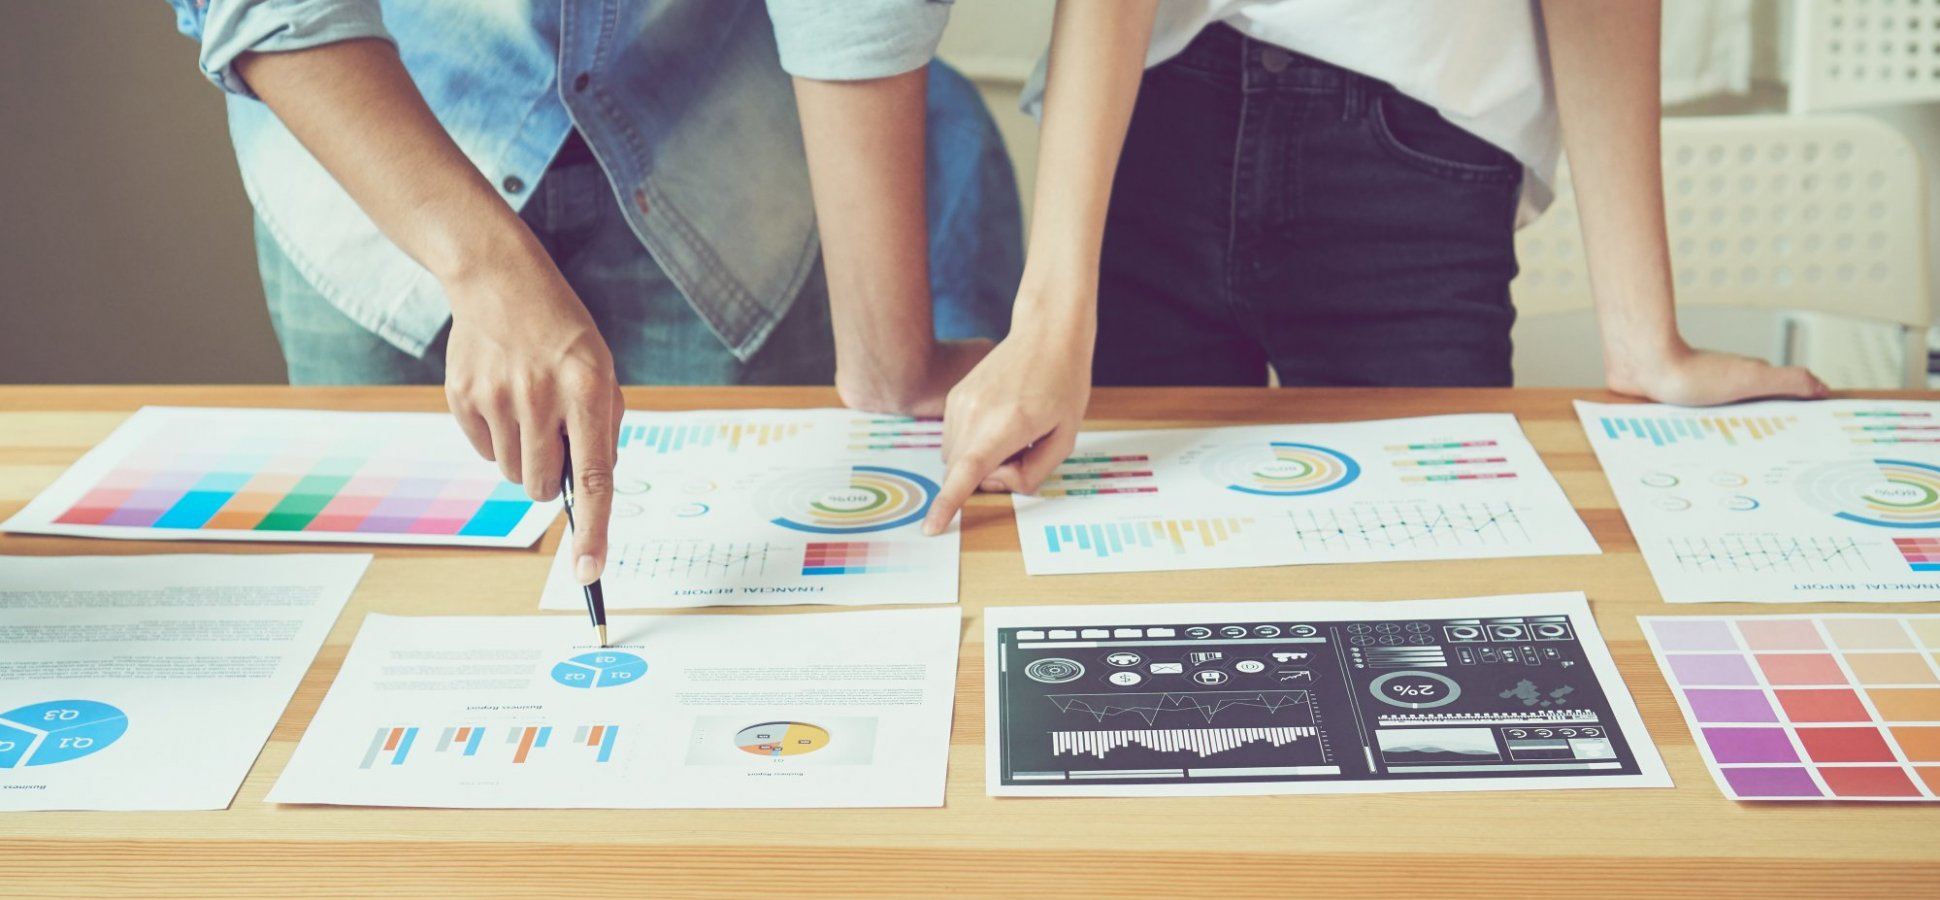 3 Key Signs Your Startup's Business Plan Needs to Change